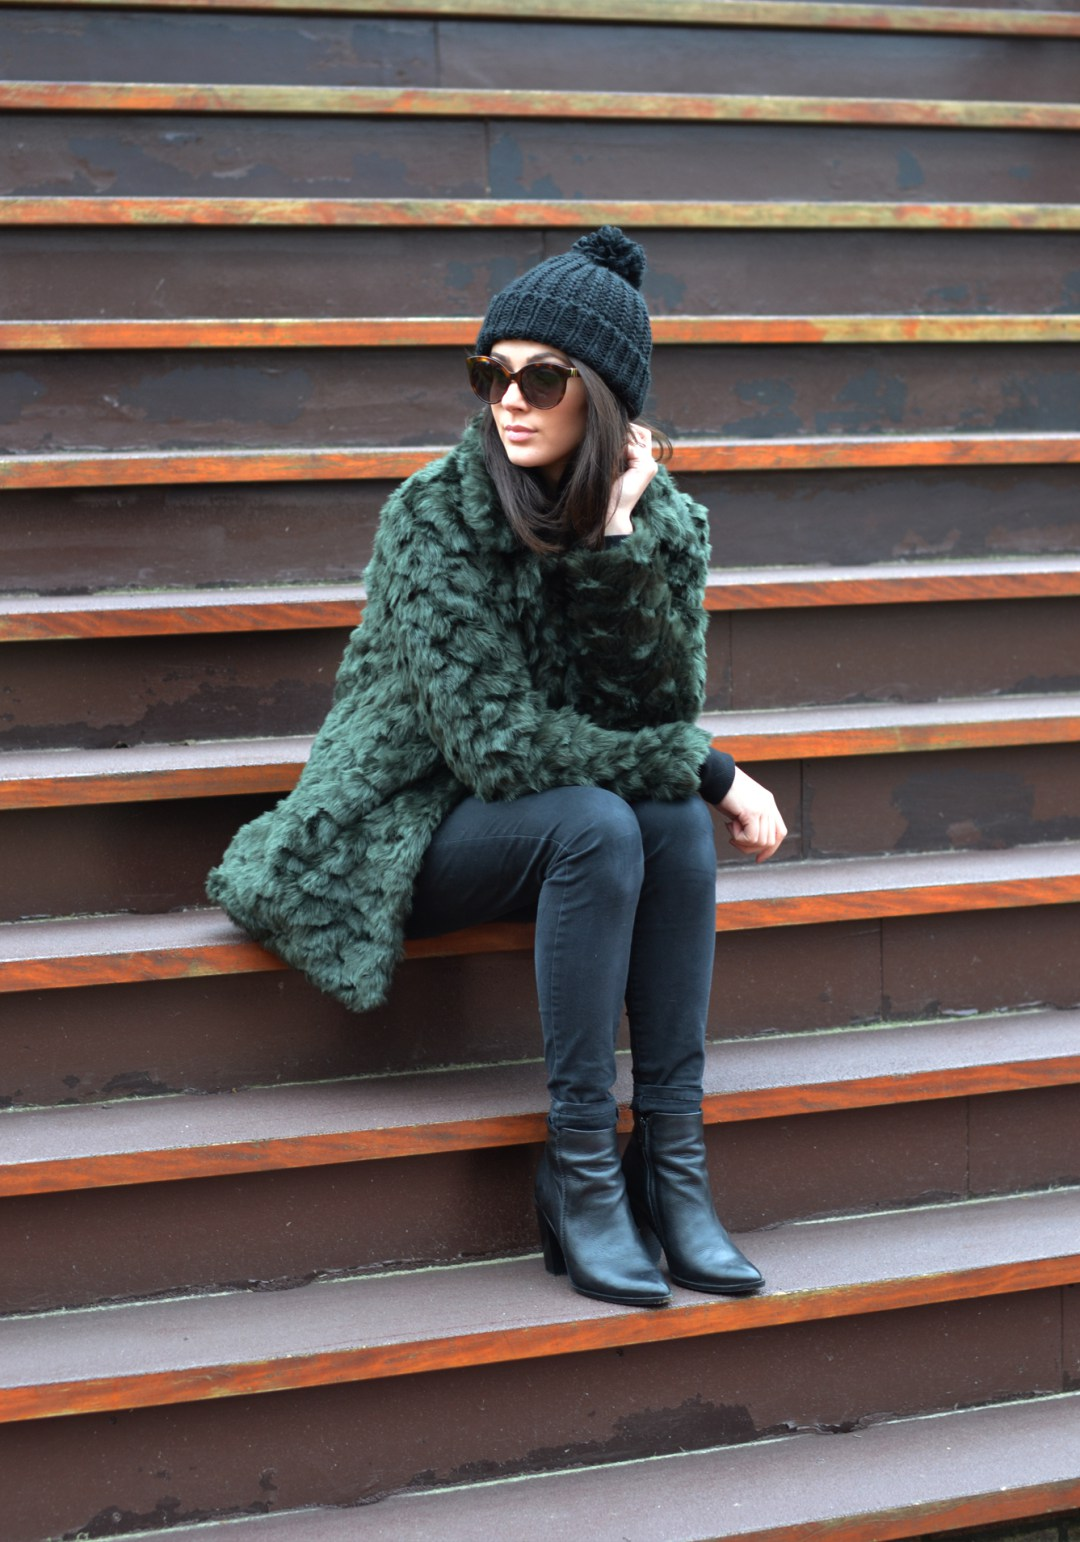 Try wearing the faux fur trend oversized to get those extra cosy winter vibes. Mary Josephine wears an emerald green coat with skinny black jeans and a matching beanie; a classic winter look. Sweater: Brandy & Melville, Jeans: River Island, Beanie: Primark, Boots: Sacha, Sunglasses: Fendi.